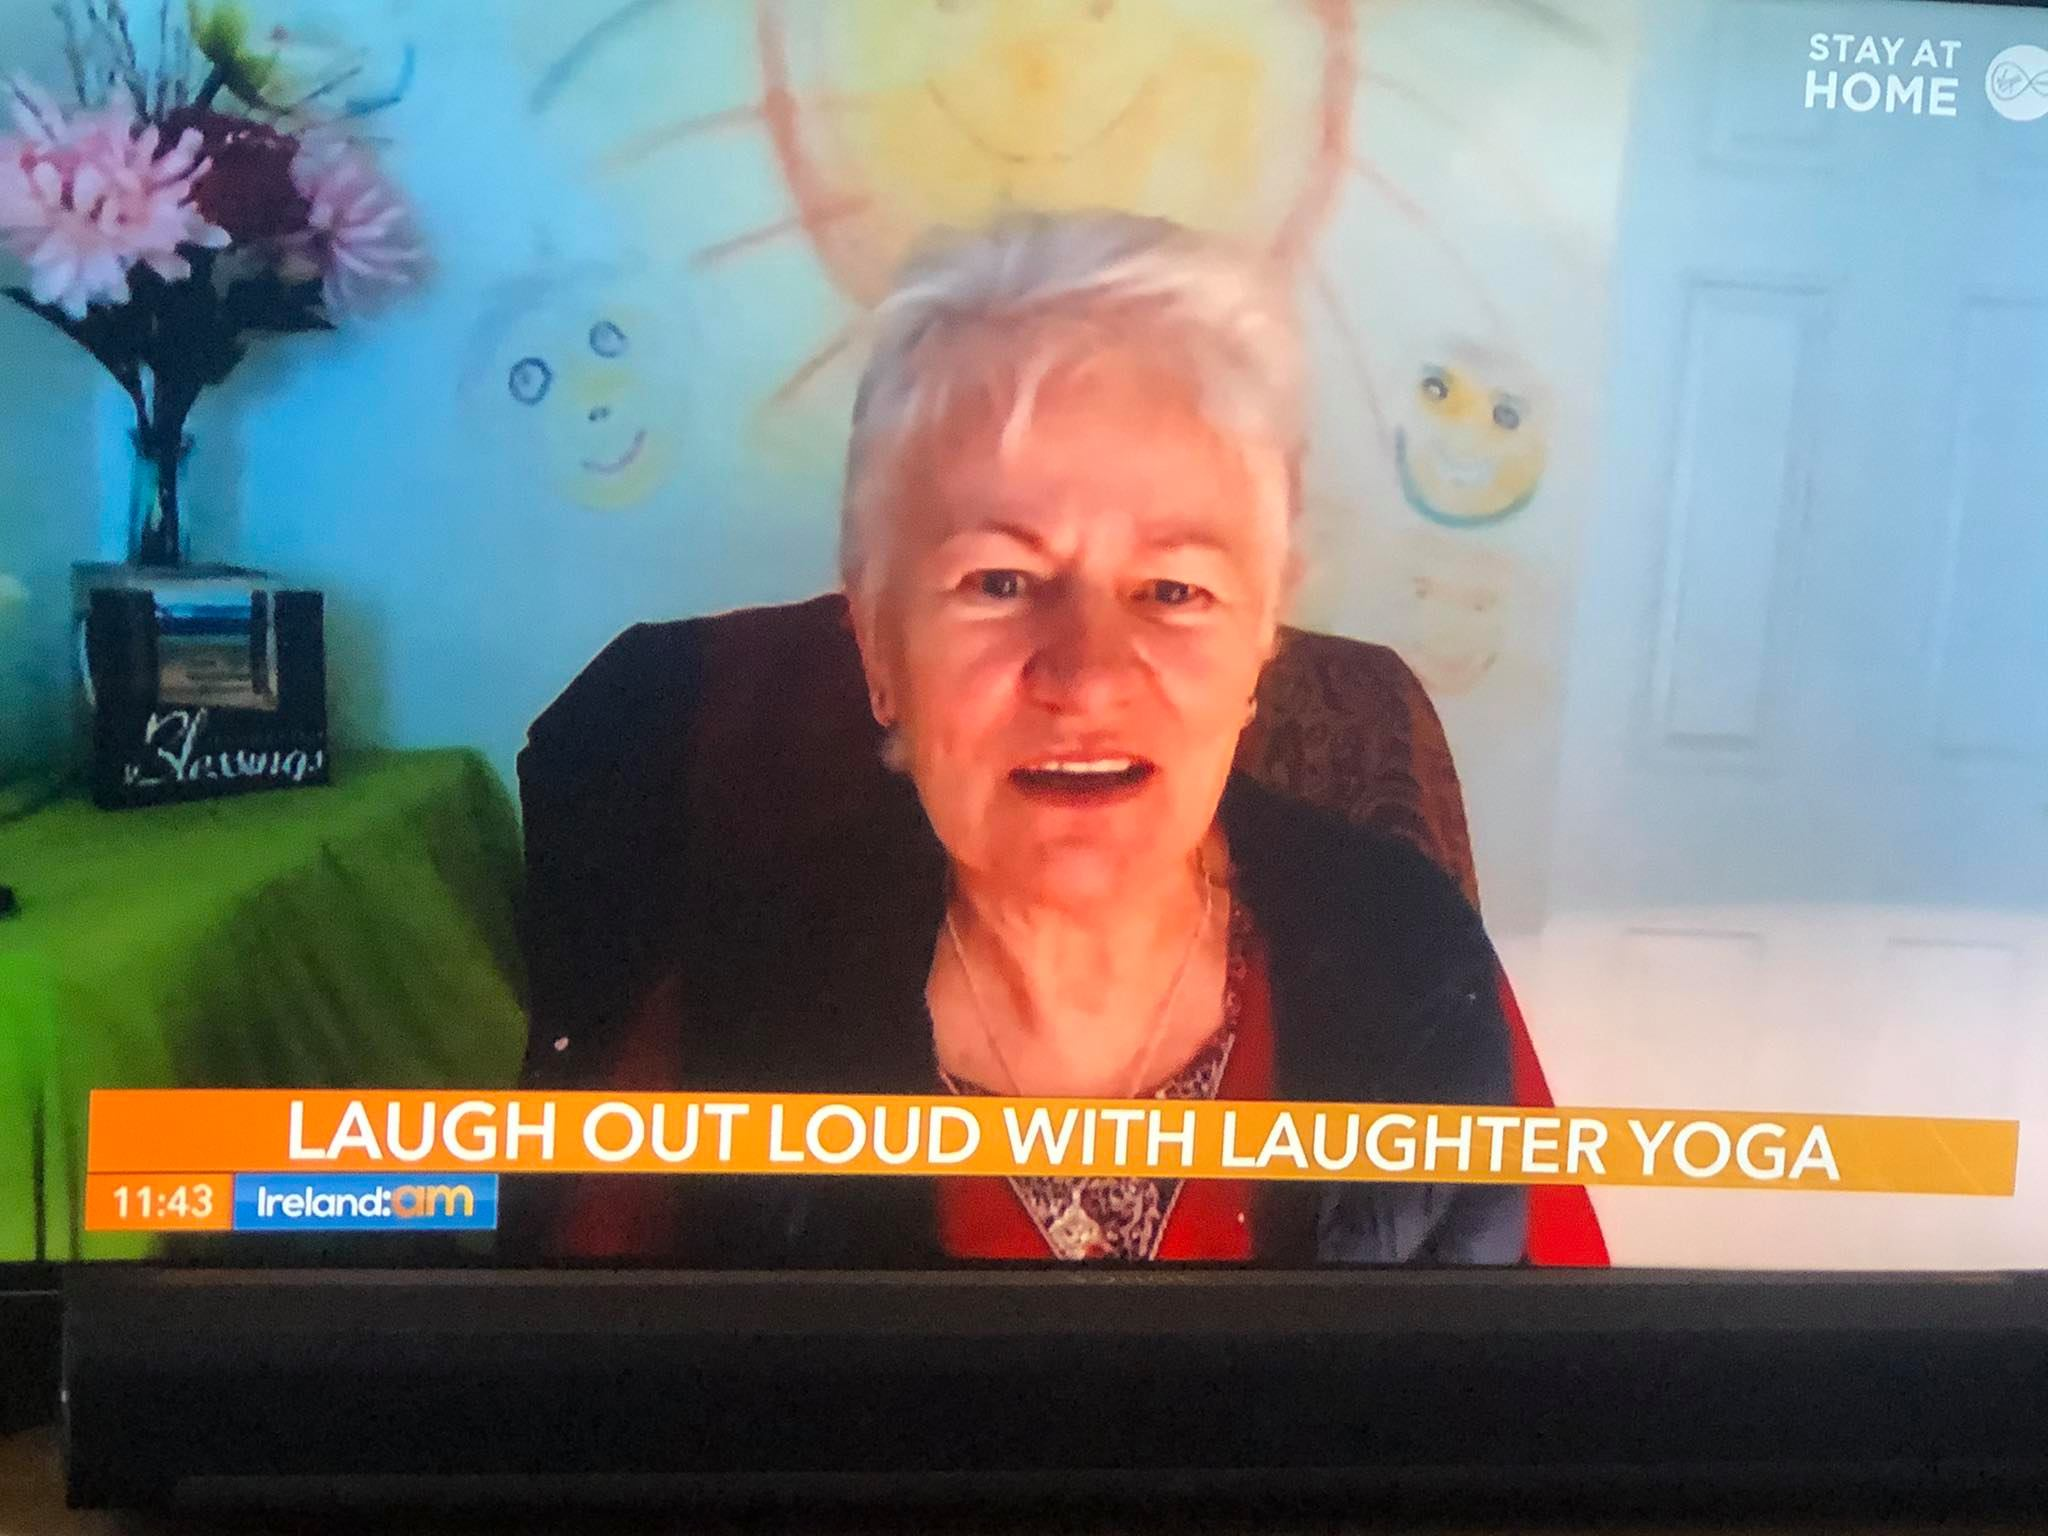 Laughter Yoga (Hasyayoga) with Mary Ananda Shakt